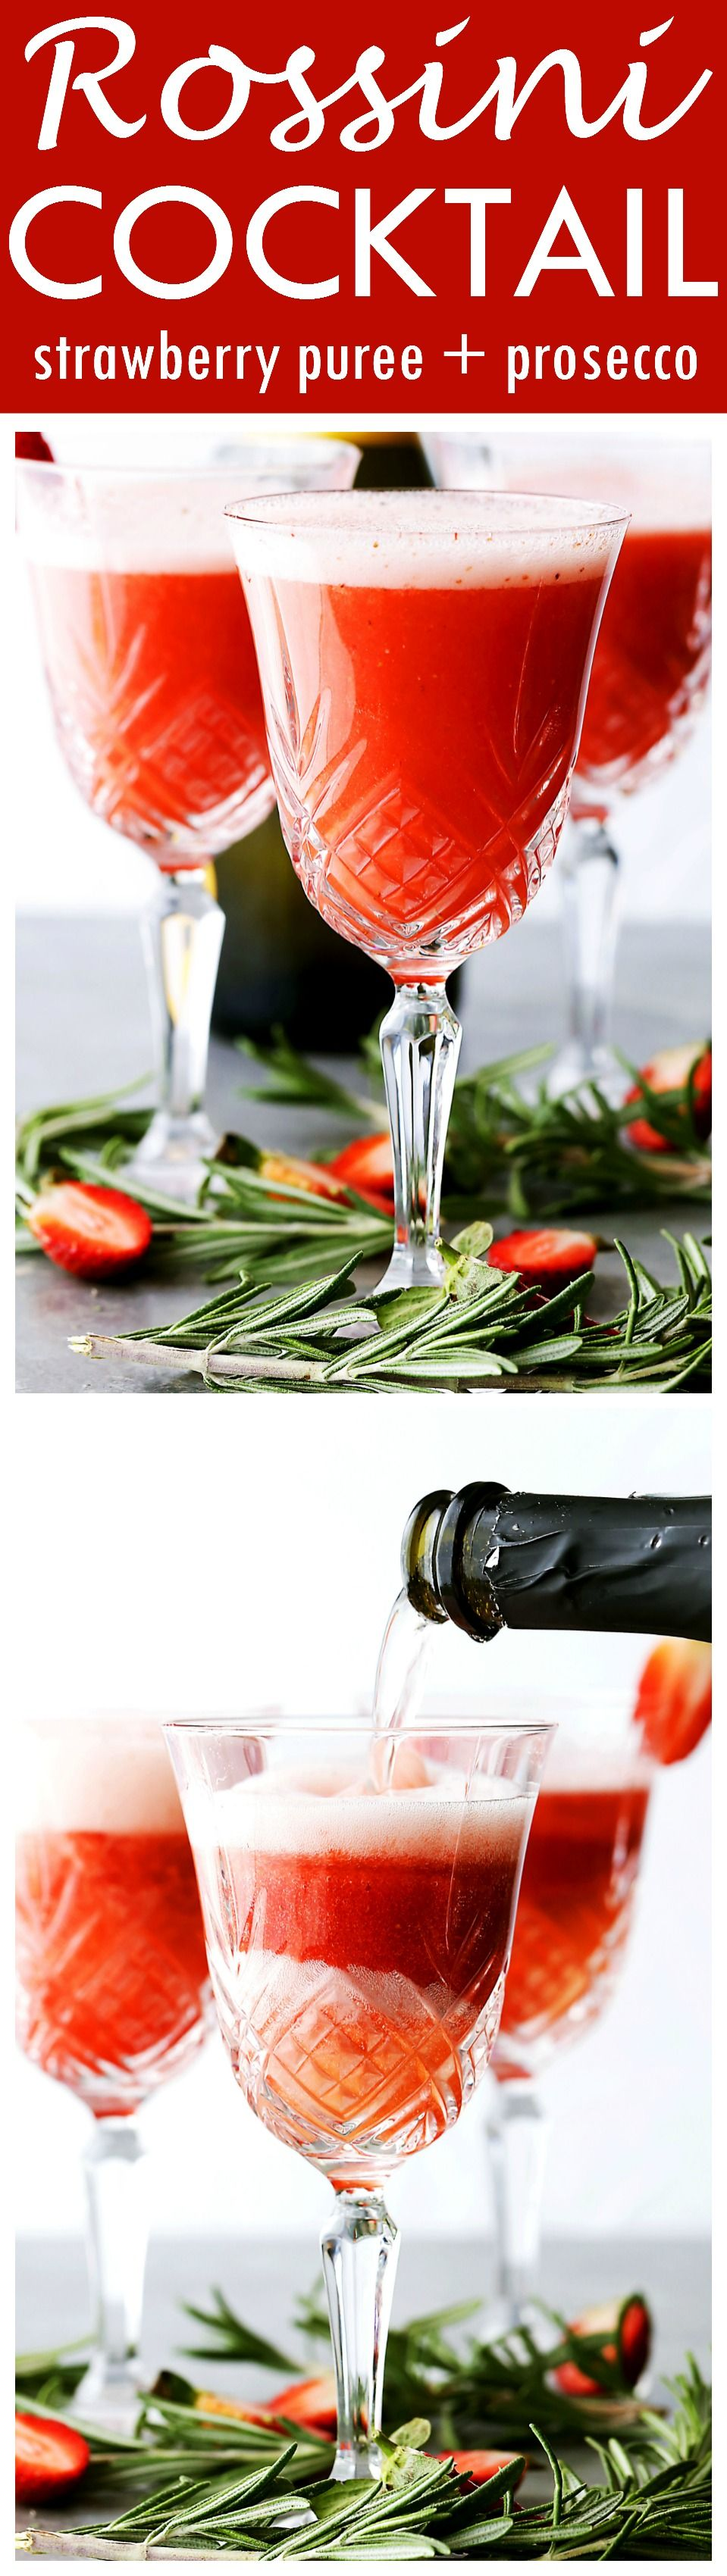 Rossini Cocktail - Festive, gorgeous, and delicious cocktail made with Prosecco and strawberry puree!